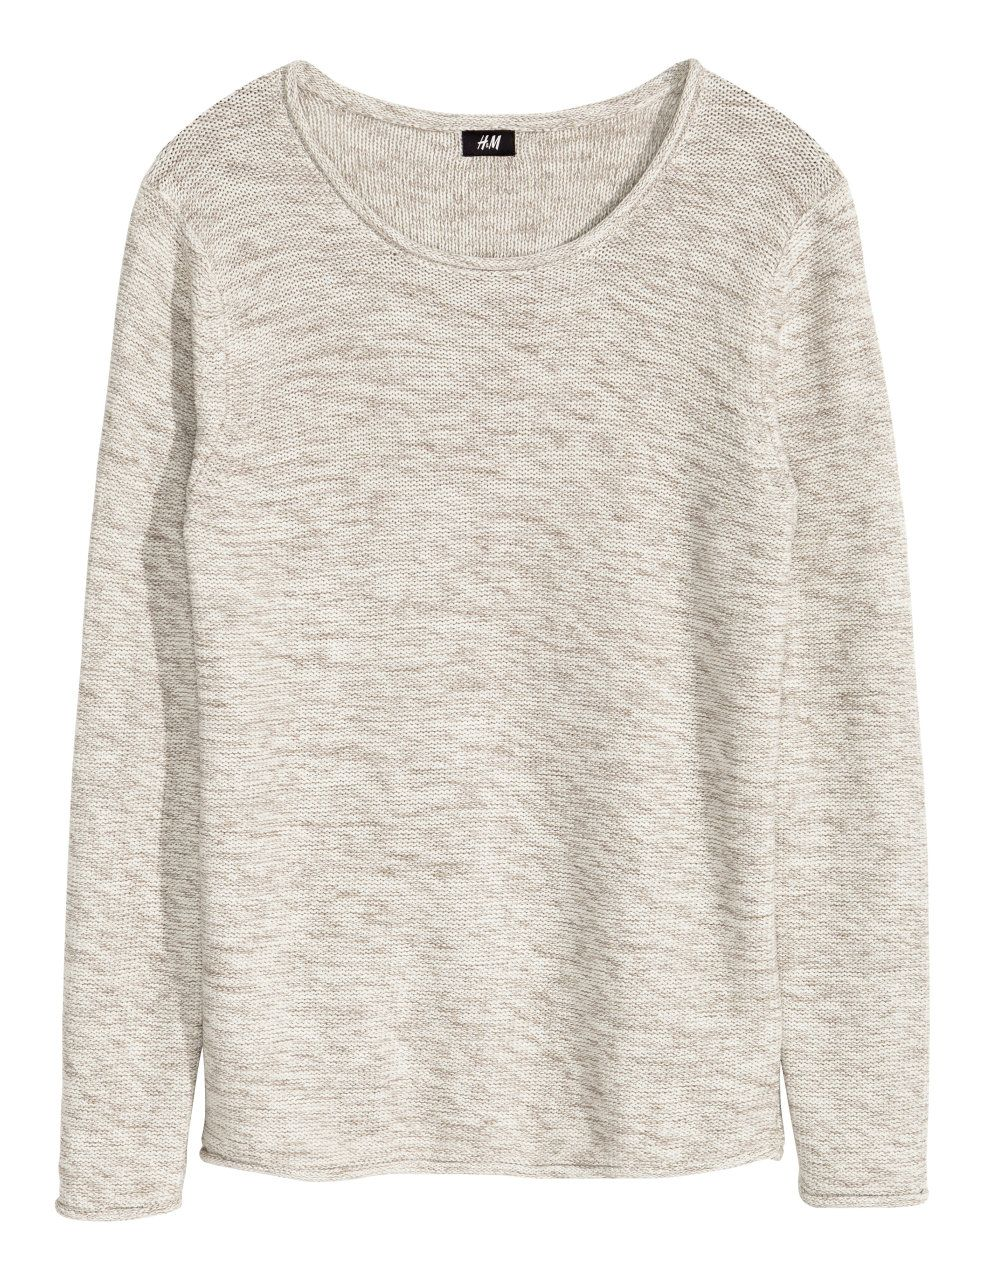 Purl-knit Cotton Sweater | Light beige melange | Men | H&M US ...